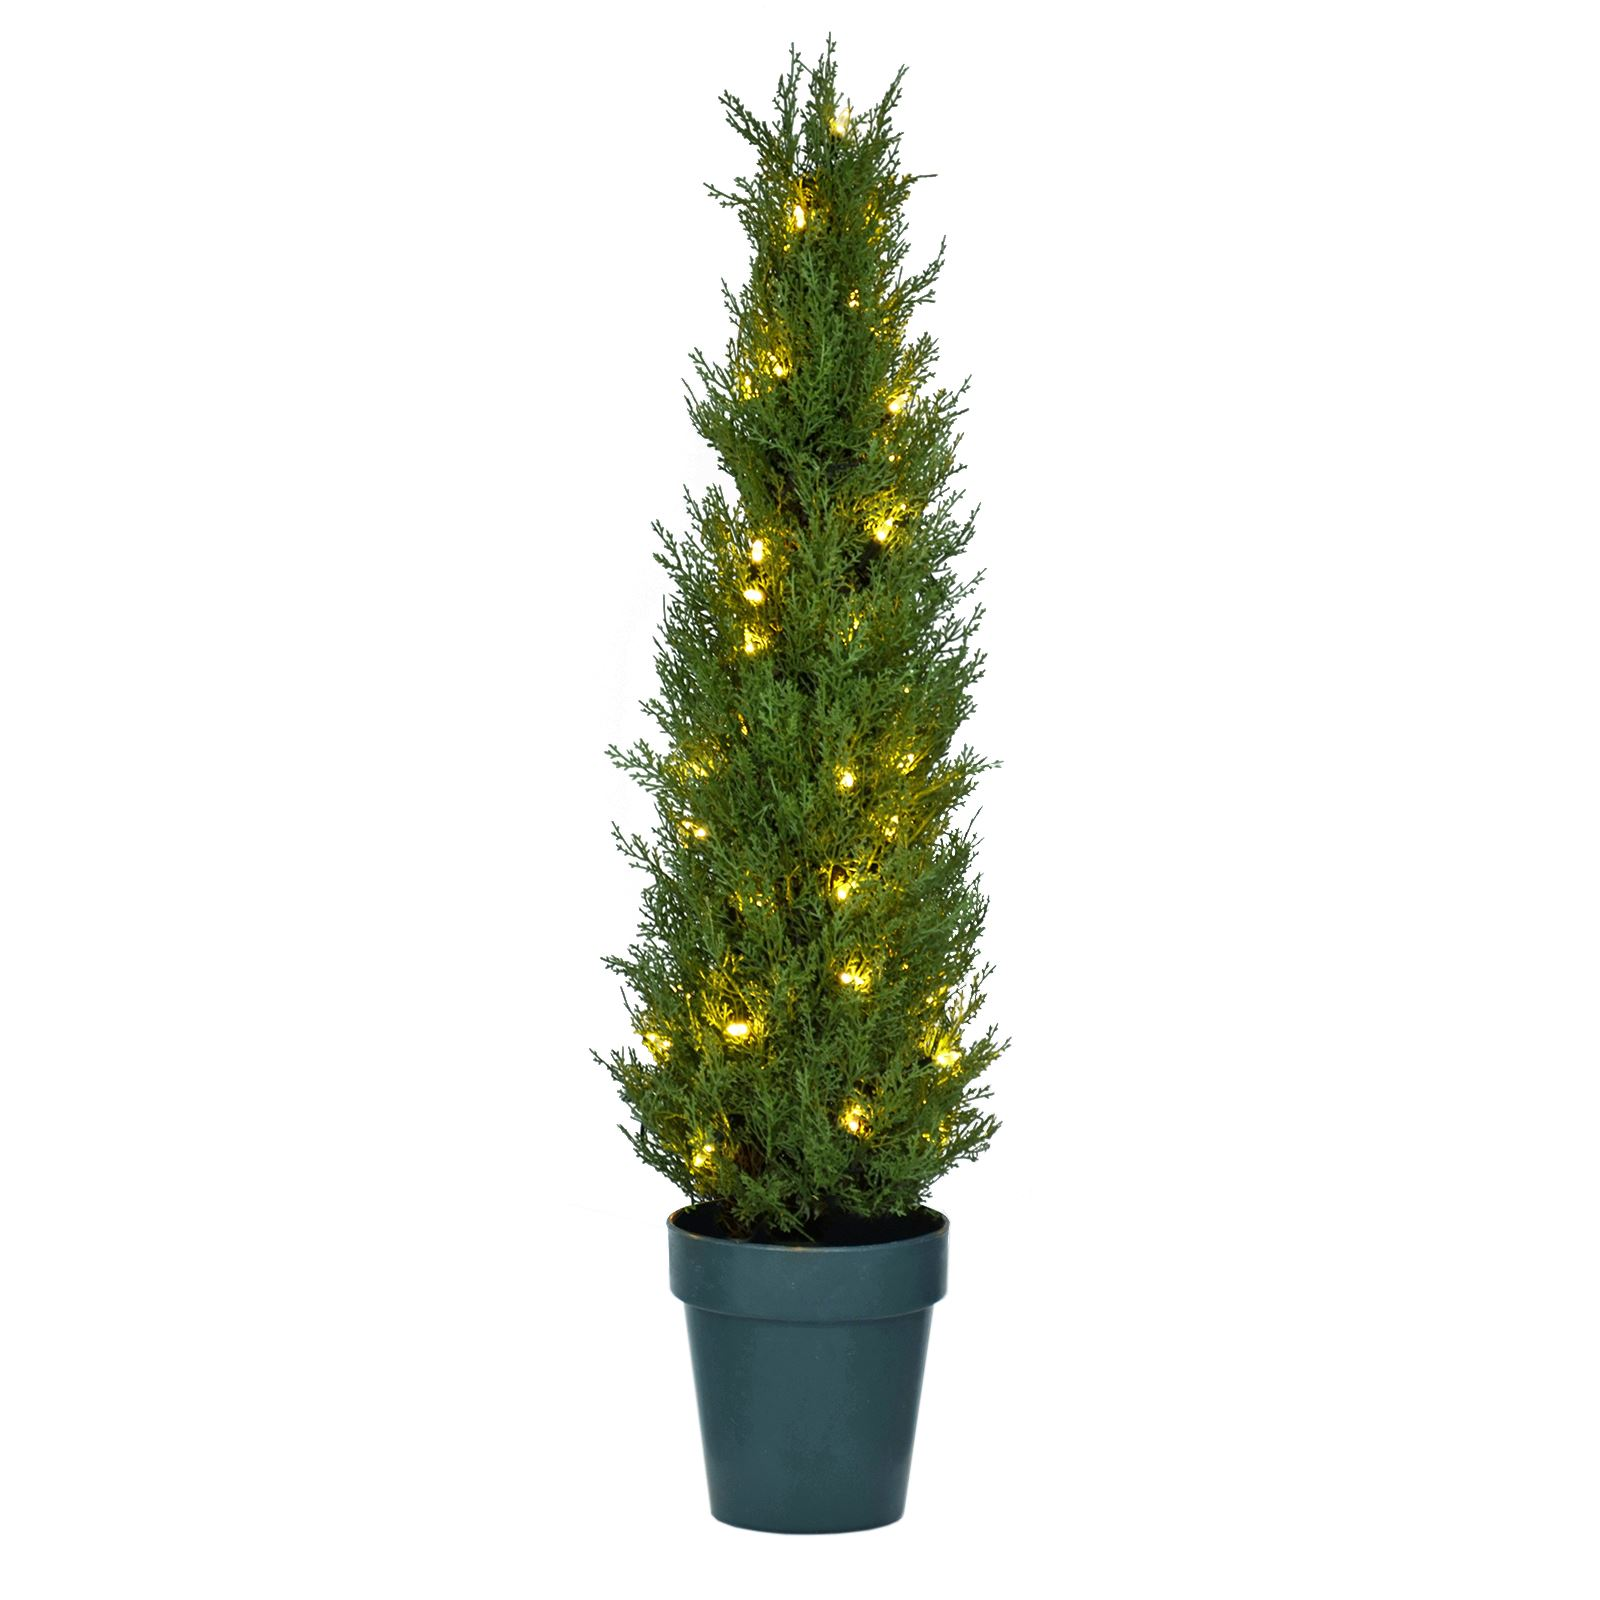 Details About New Potted 3ft Pre Lit Mini Spruce Xmas Tree Indoor Outdoor Use White Led Lights